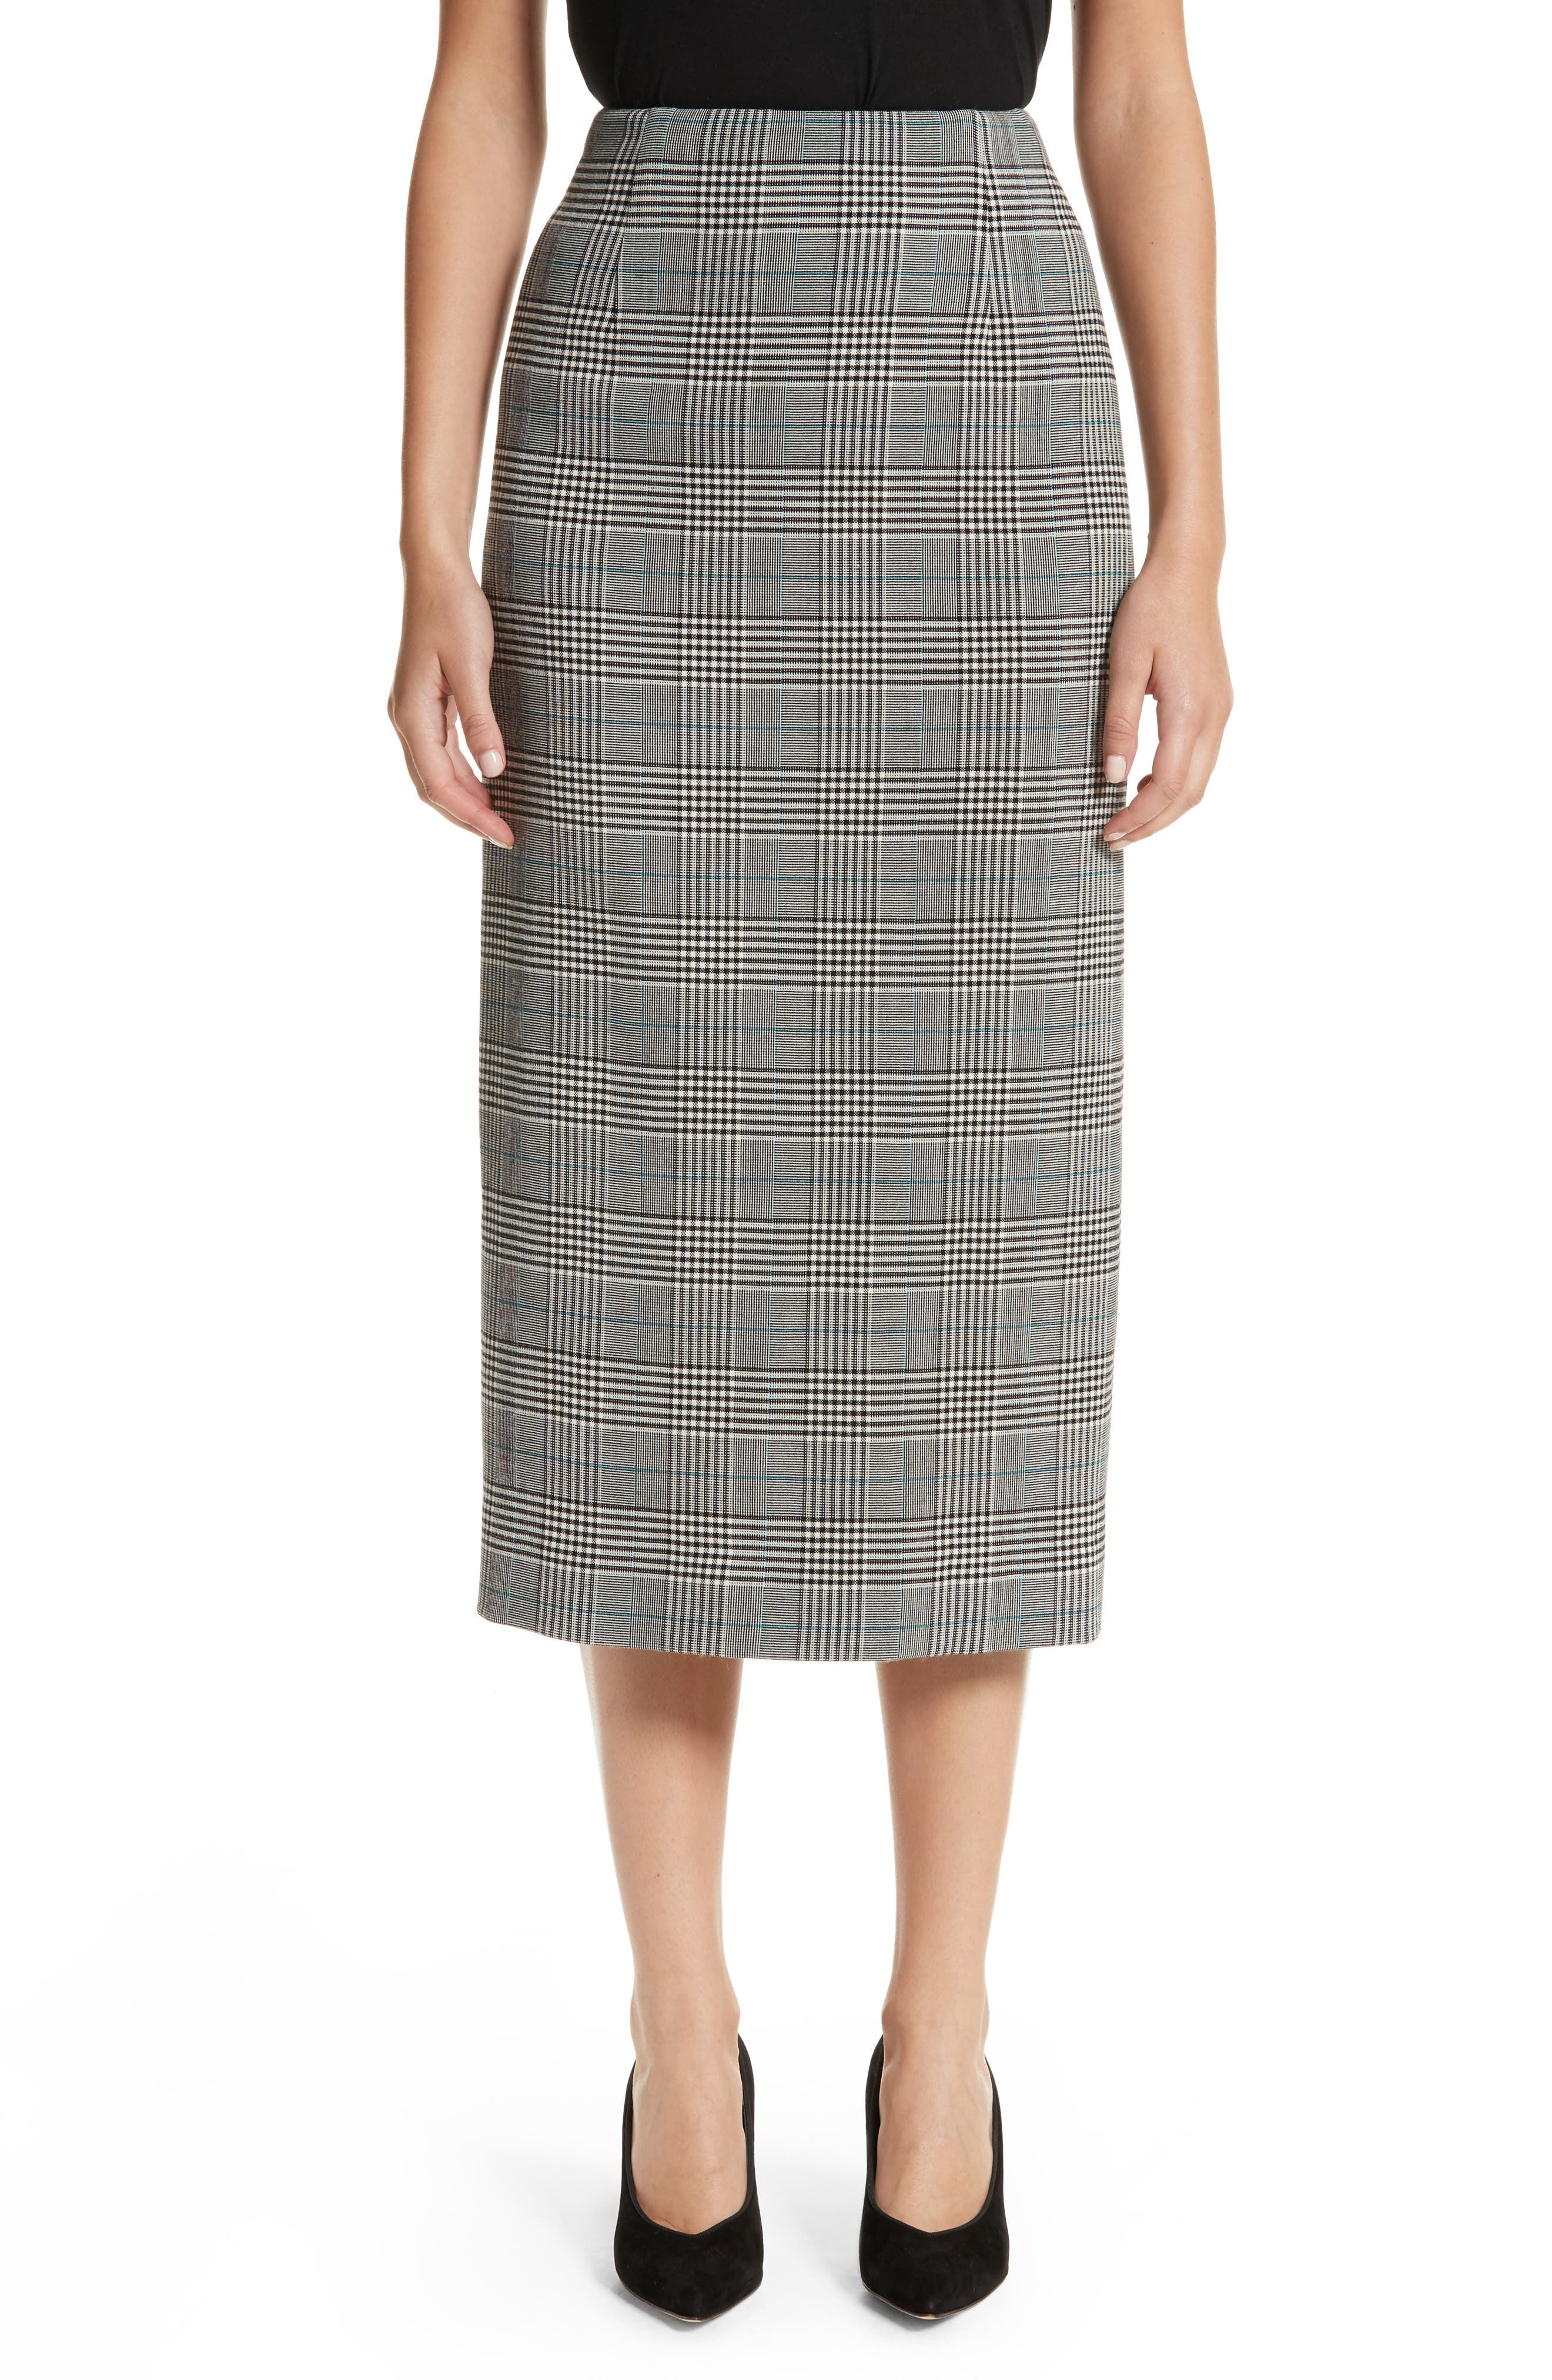 Prince of Wales High Waist Pencil Skirt,                         Main,                         color, 001